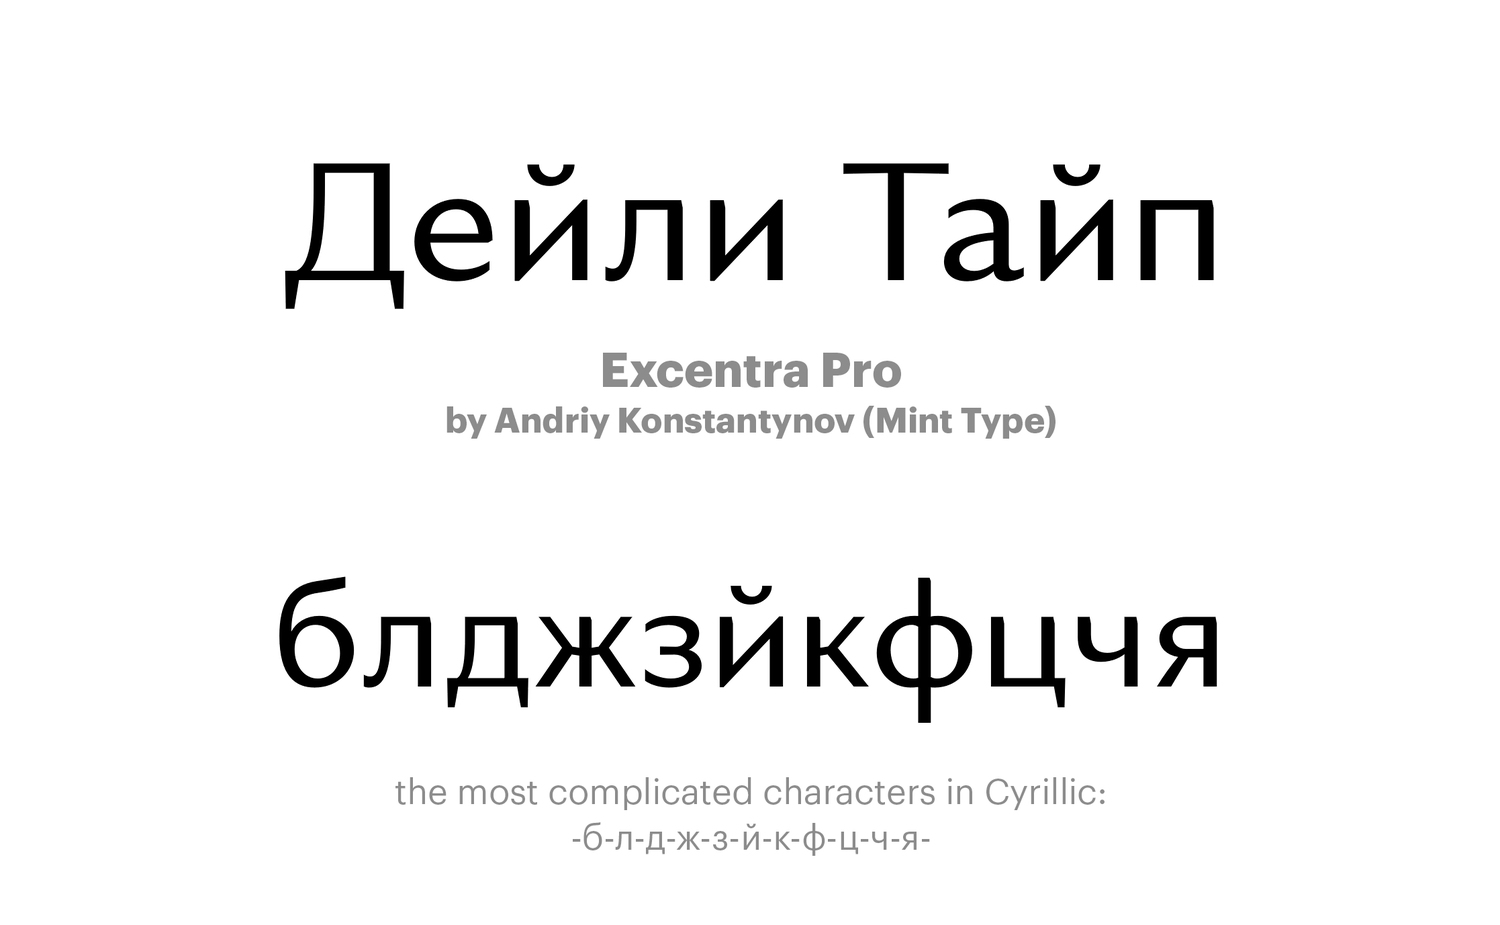 Excentra-Pro-by-Andriy-Konstantynov-(Mint-Type)